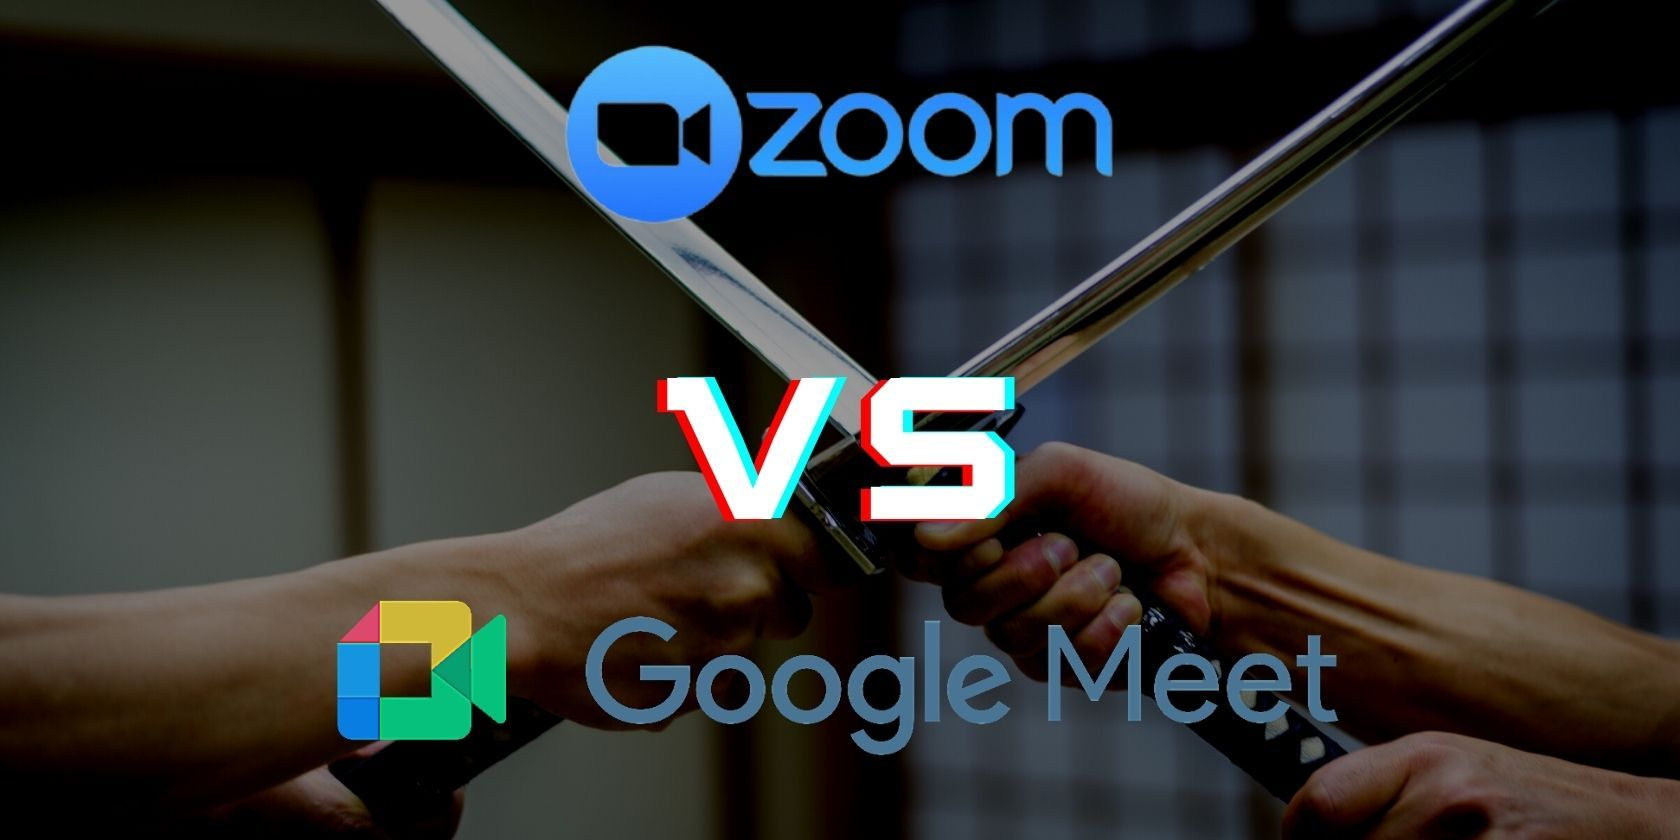 Google Meet Vs Zoom: Which Video Conferencing Tool Should You Choose